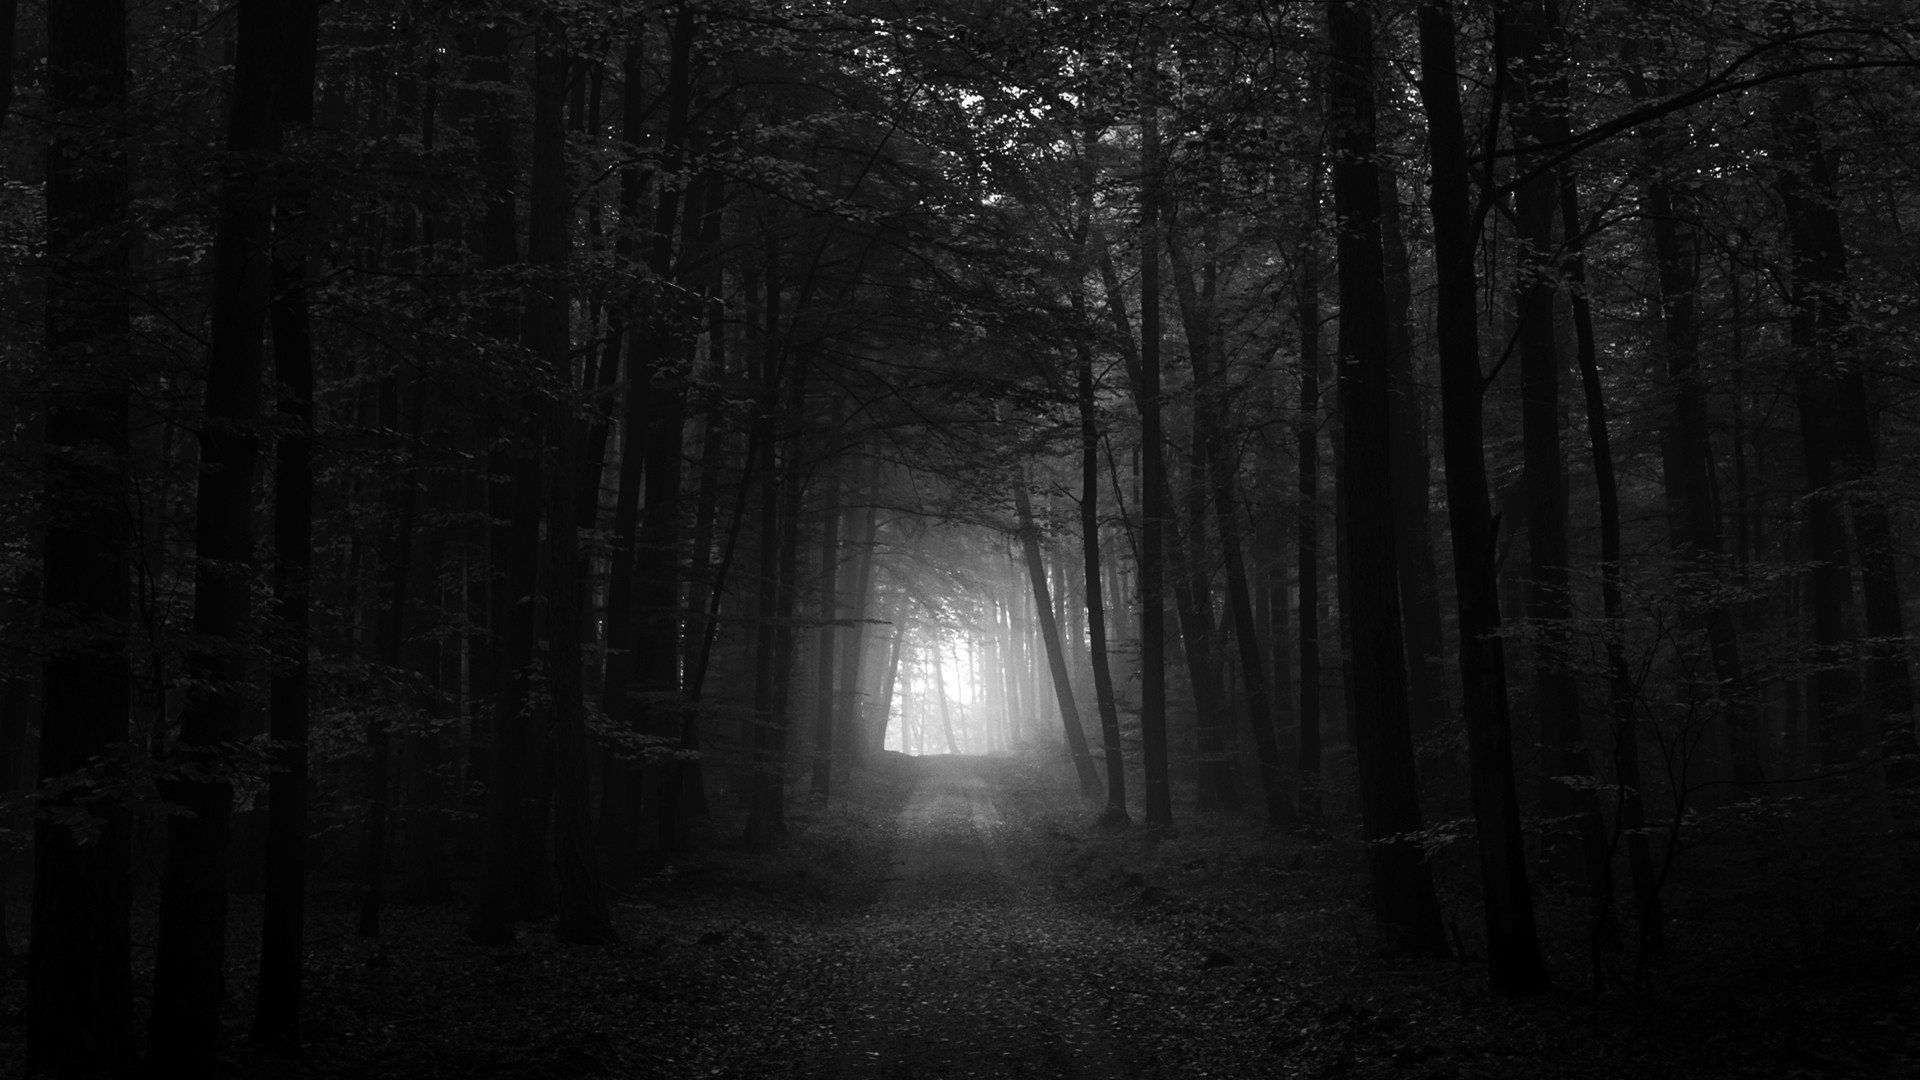 Black And White Pictures Anime Forest 15 Wide Wallpaper. Black And White  Pictures Anime Forest 15 Wide Wallpaper